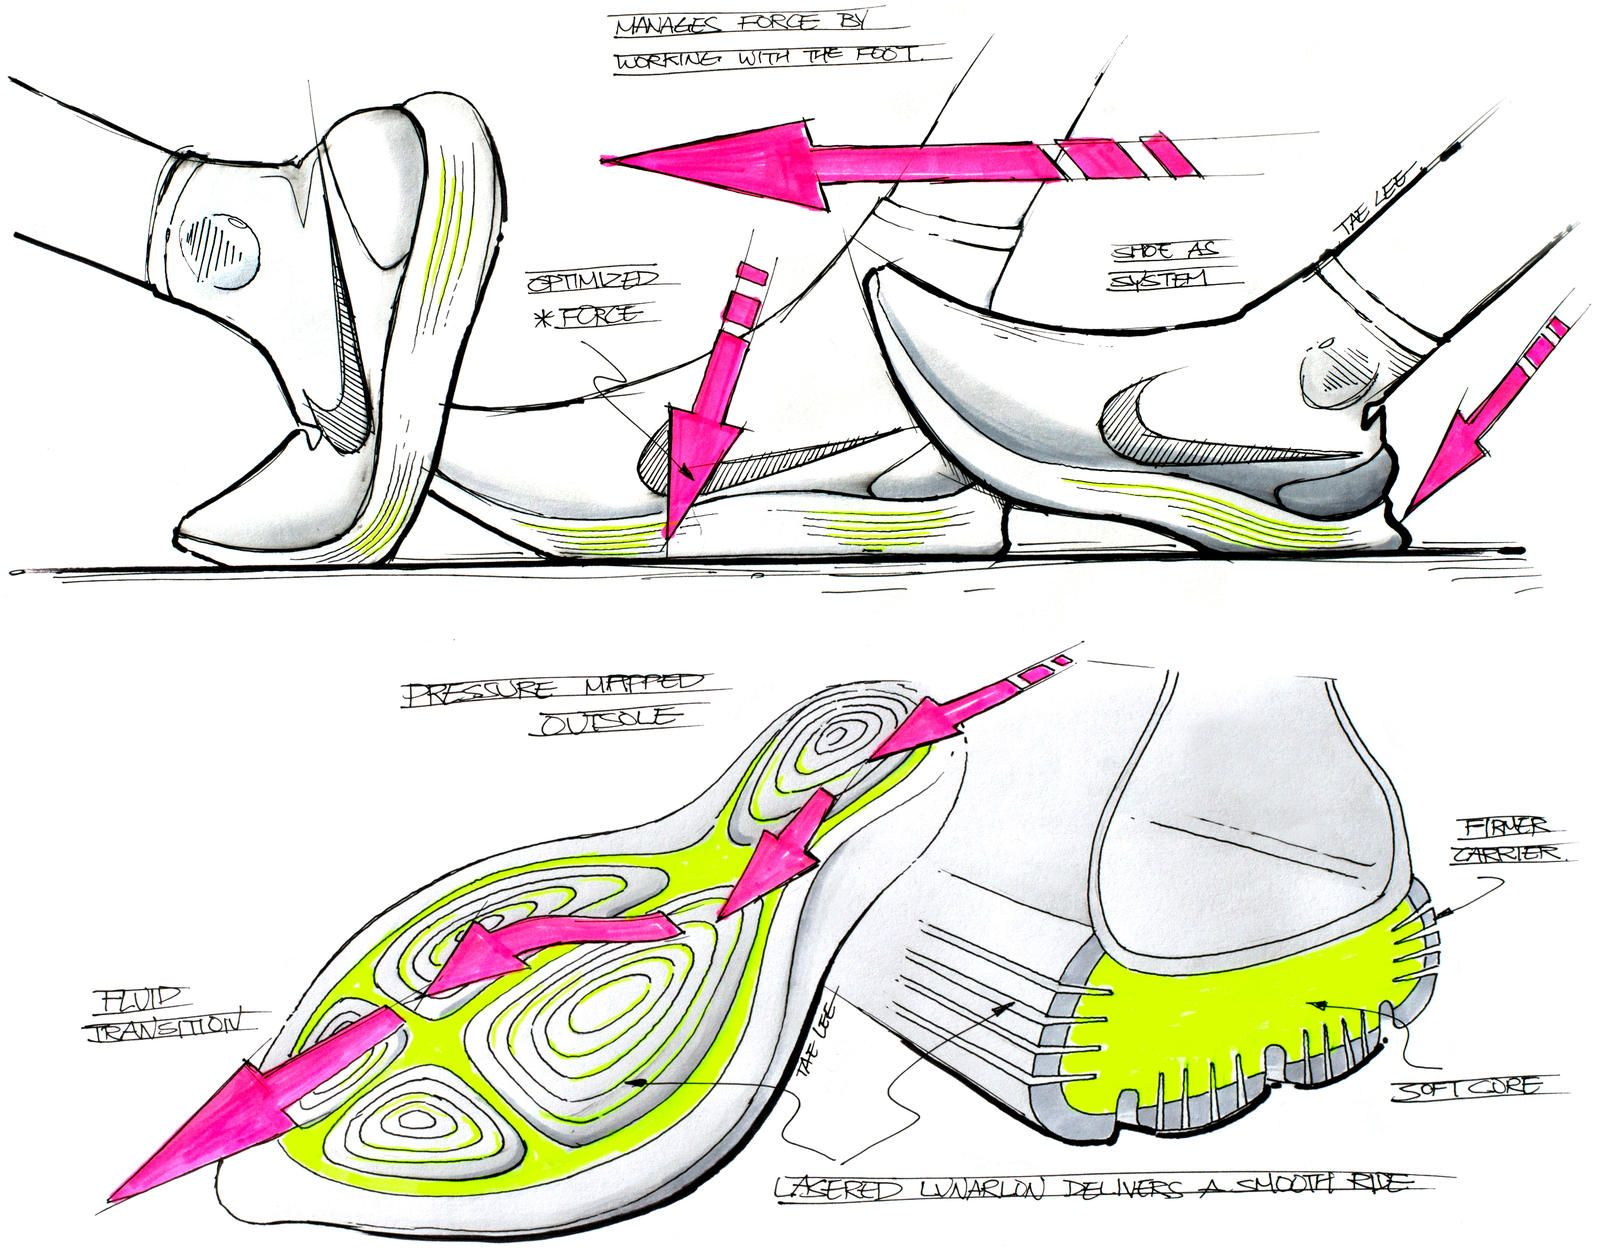 Nike LunarEpic Flyknit Introduces The Future Of Running is part of Shoe design sketches - Featuring a revolutionary midheight collar design and a new tooling system, the LunarEpic Flyknit offers a virtually vanishing fit, fluid feel and superior softness